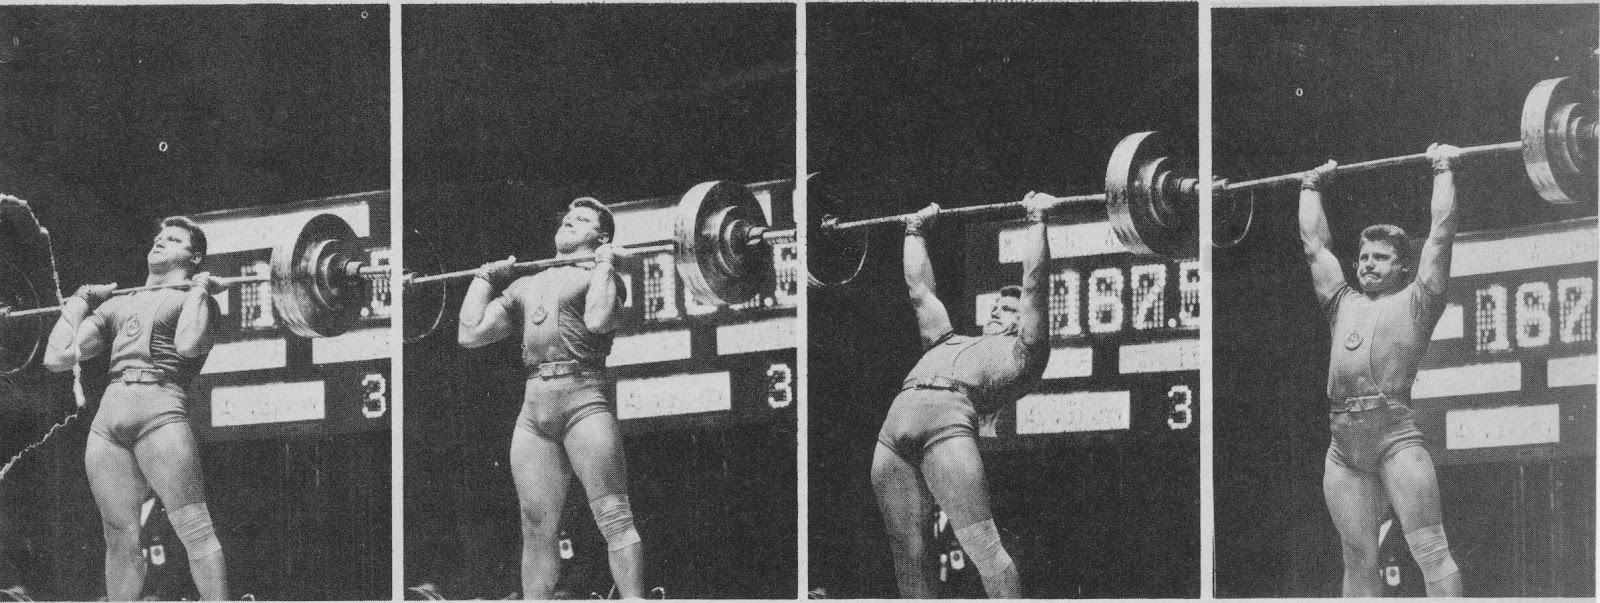 X Post R Powerlifting Owen Hubbard On The Arch In Bench